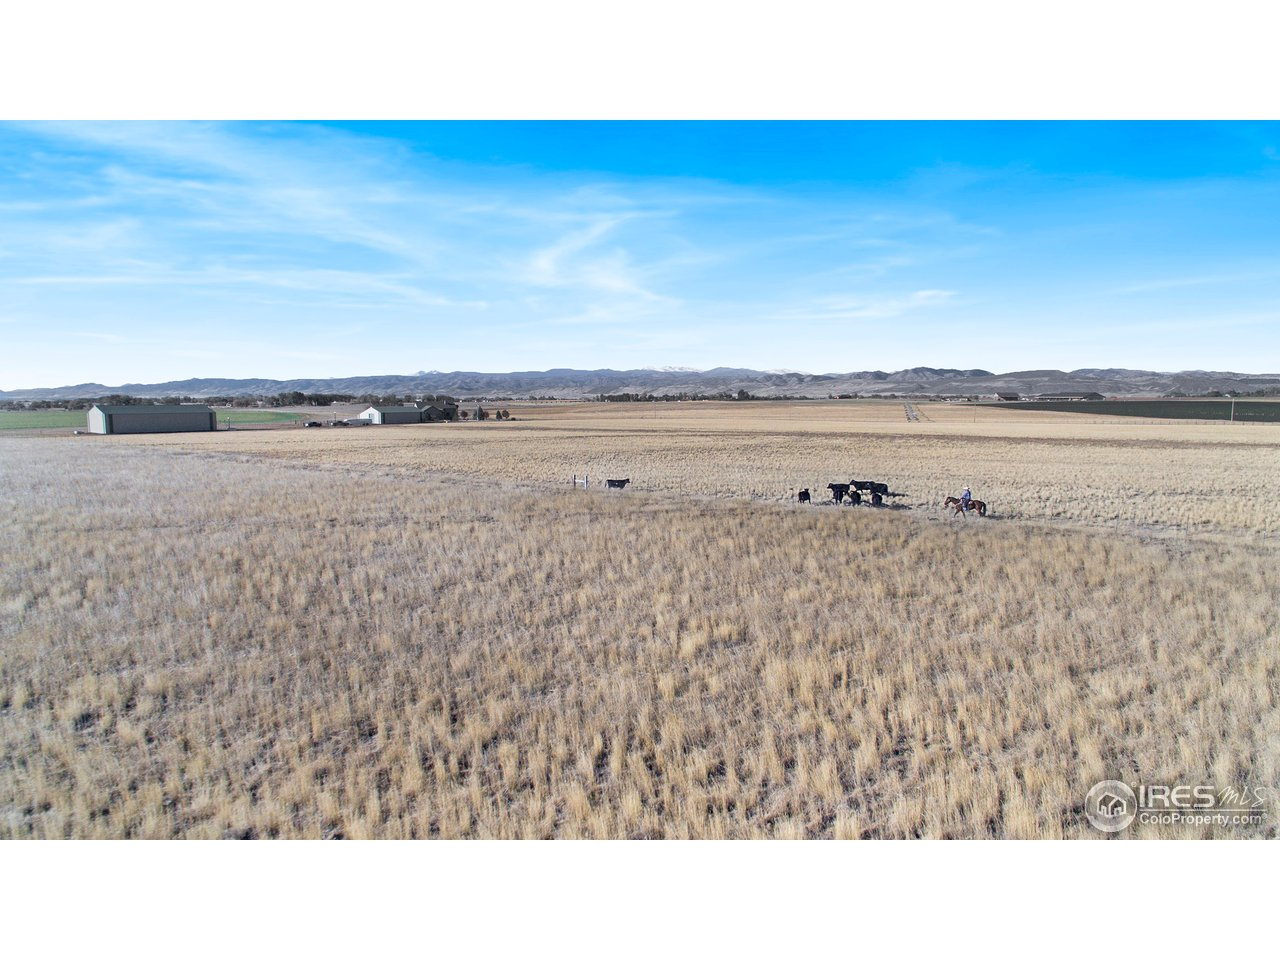 Over 30 Acres in Grass Hay